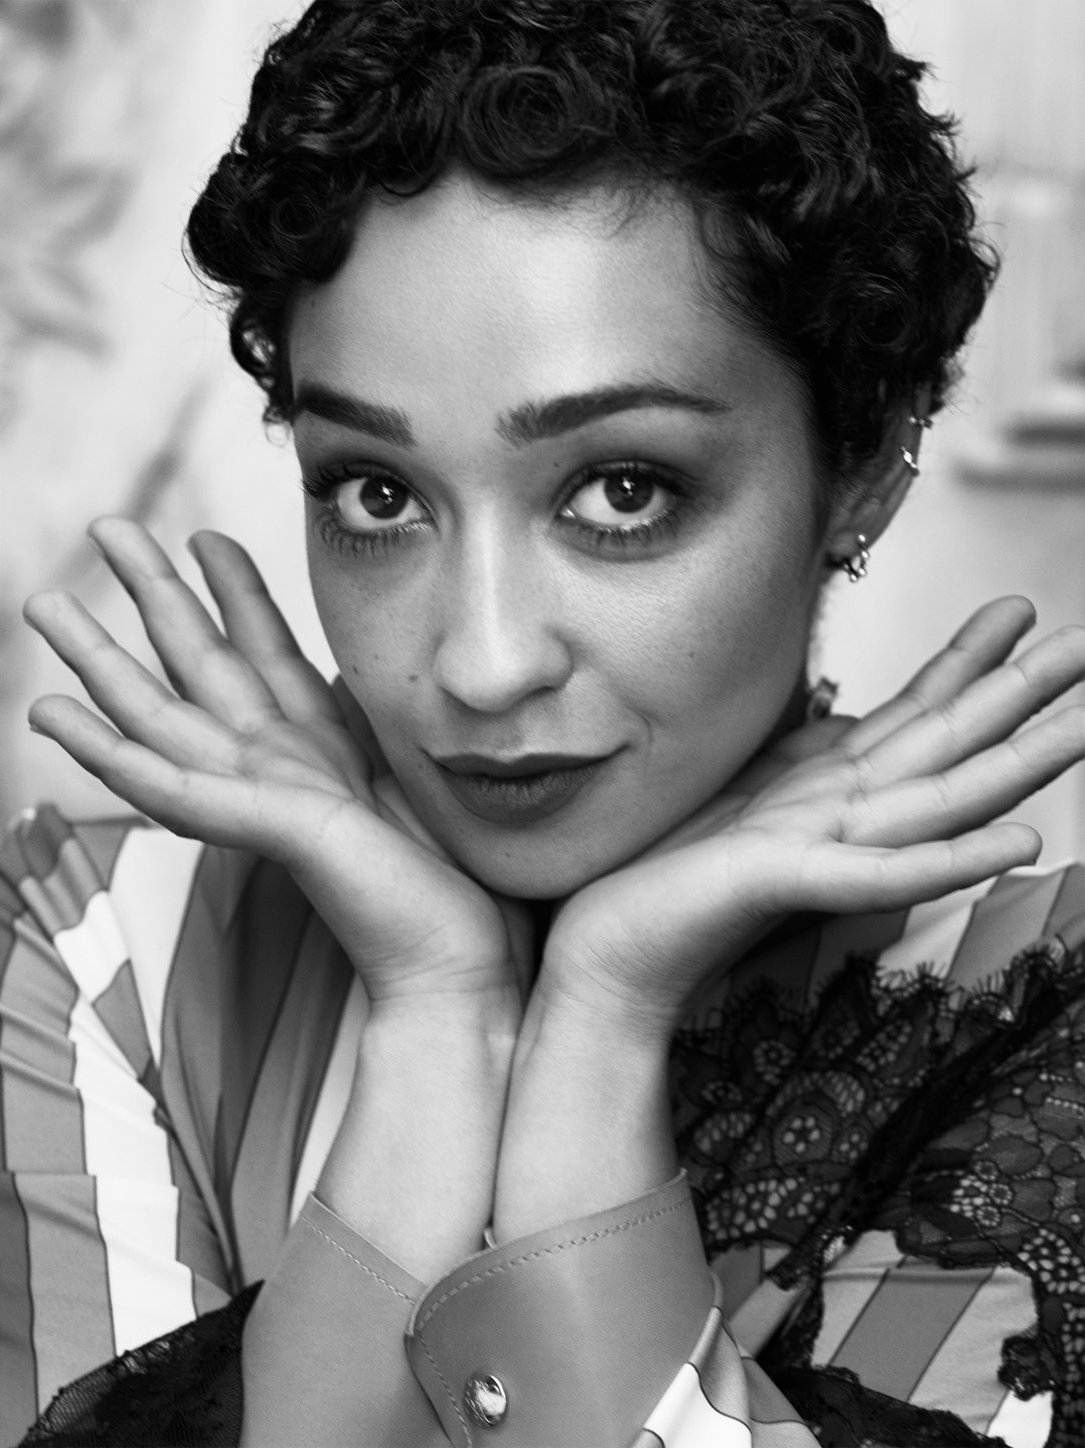 Ruth Negga Is Met Best Dressed 2017 Lainey: Ruth Negga In Town & Country US August 2017 By Victor